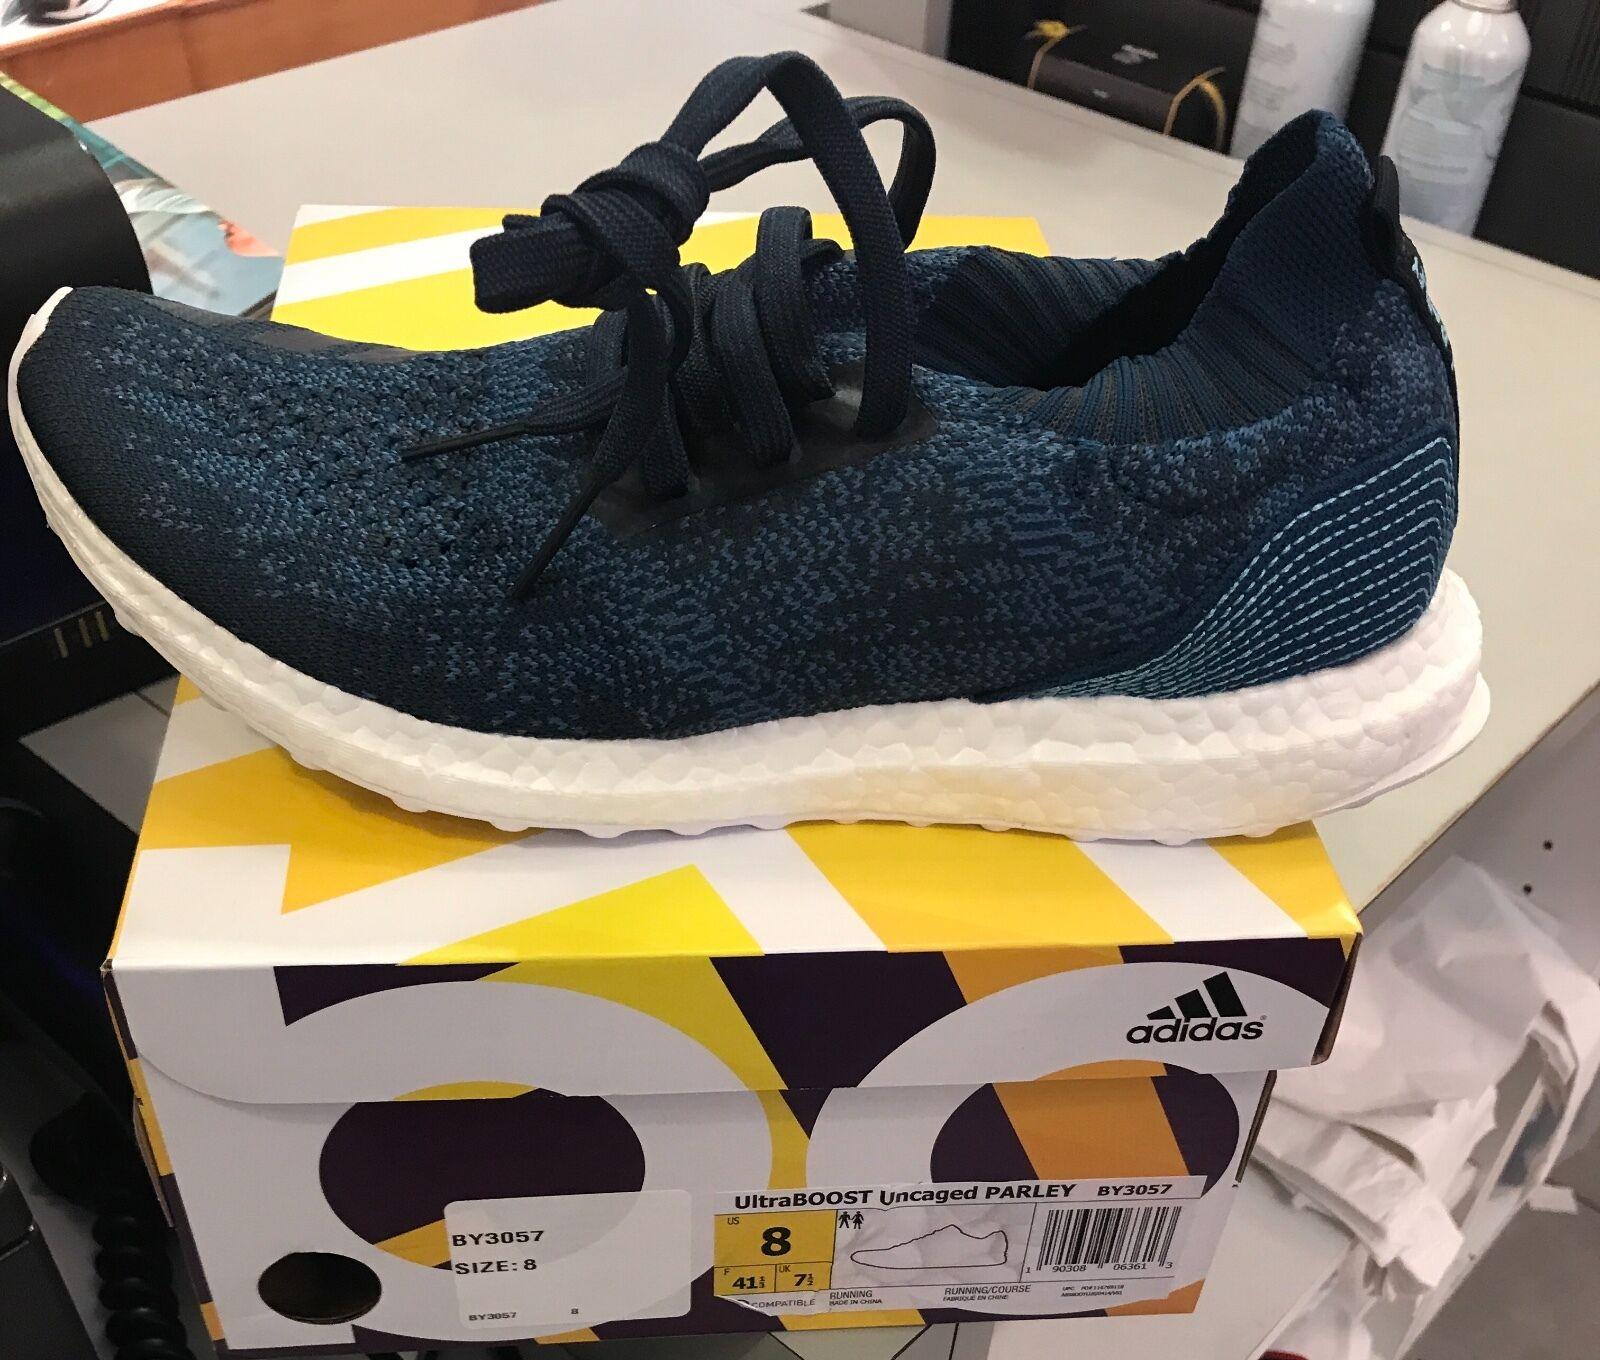 Gli uomini  adidas ultraboost x parley marina fece uscire by3057 notte marina parley 8 6c0734